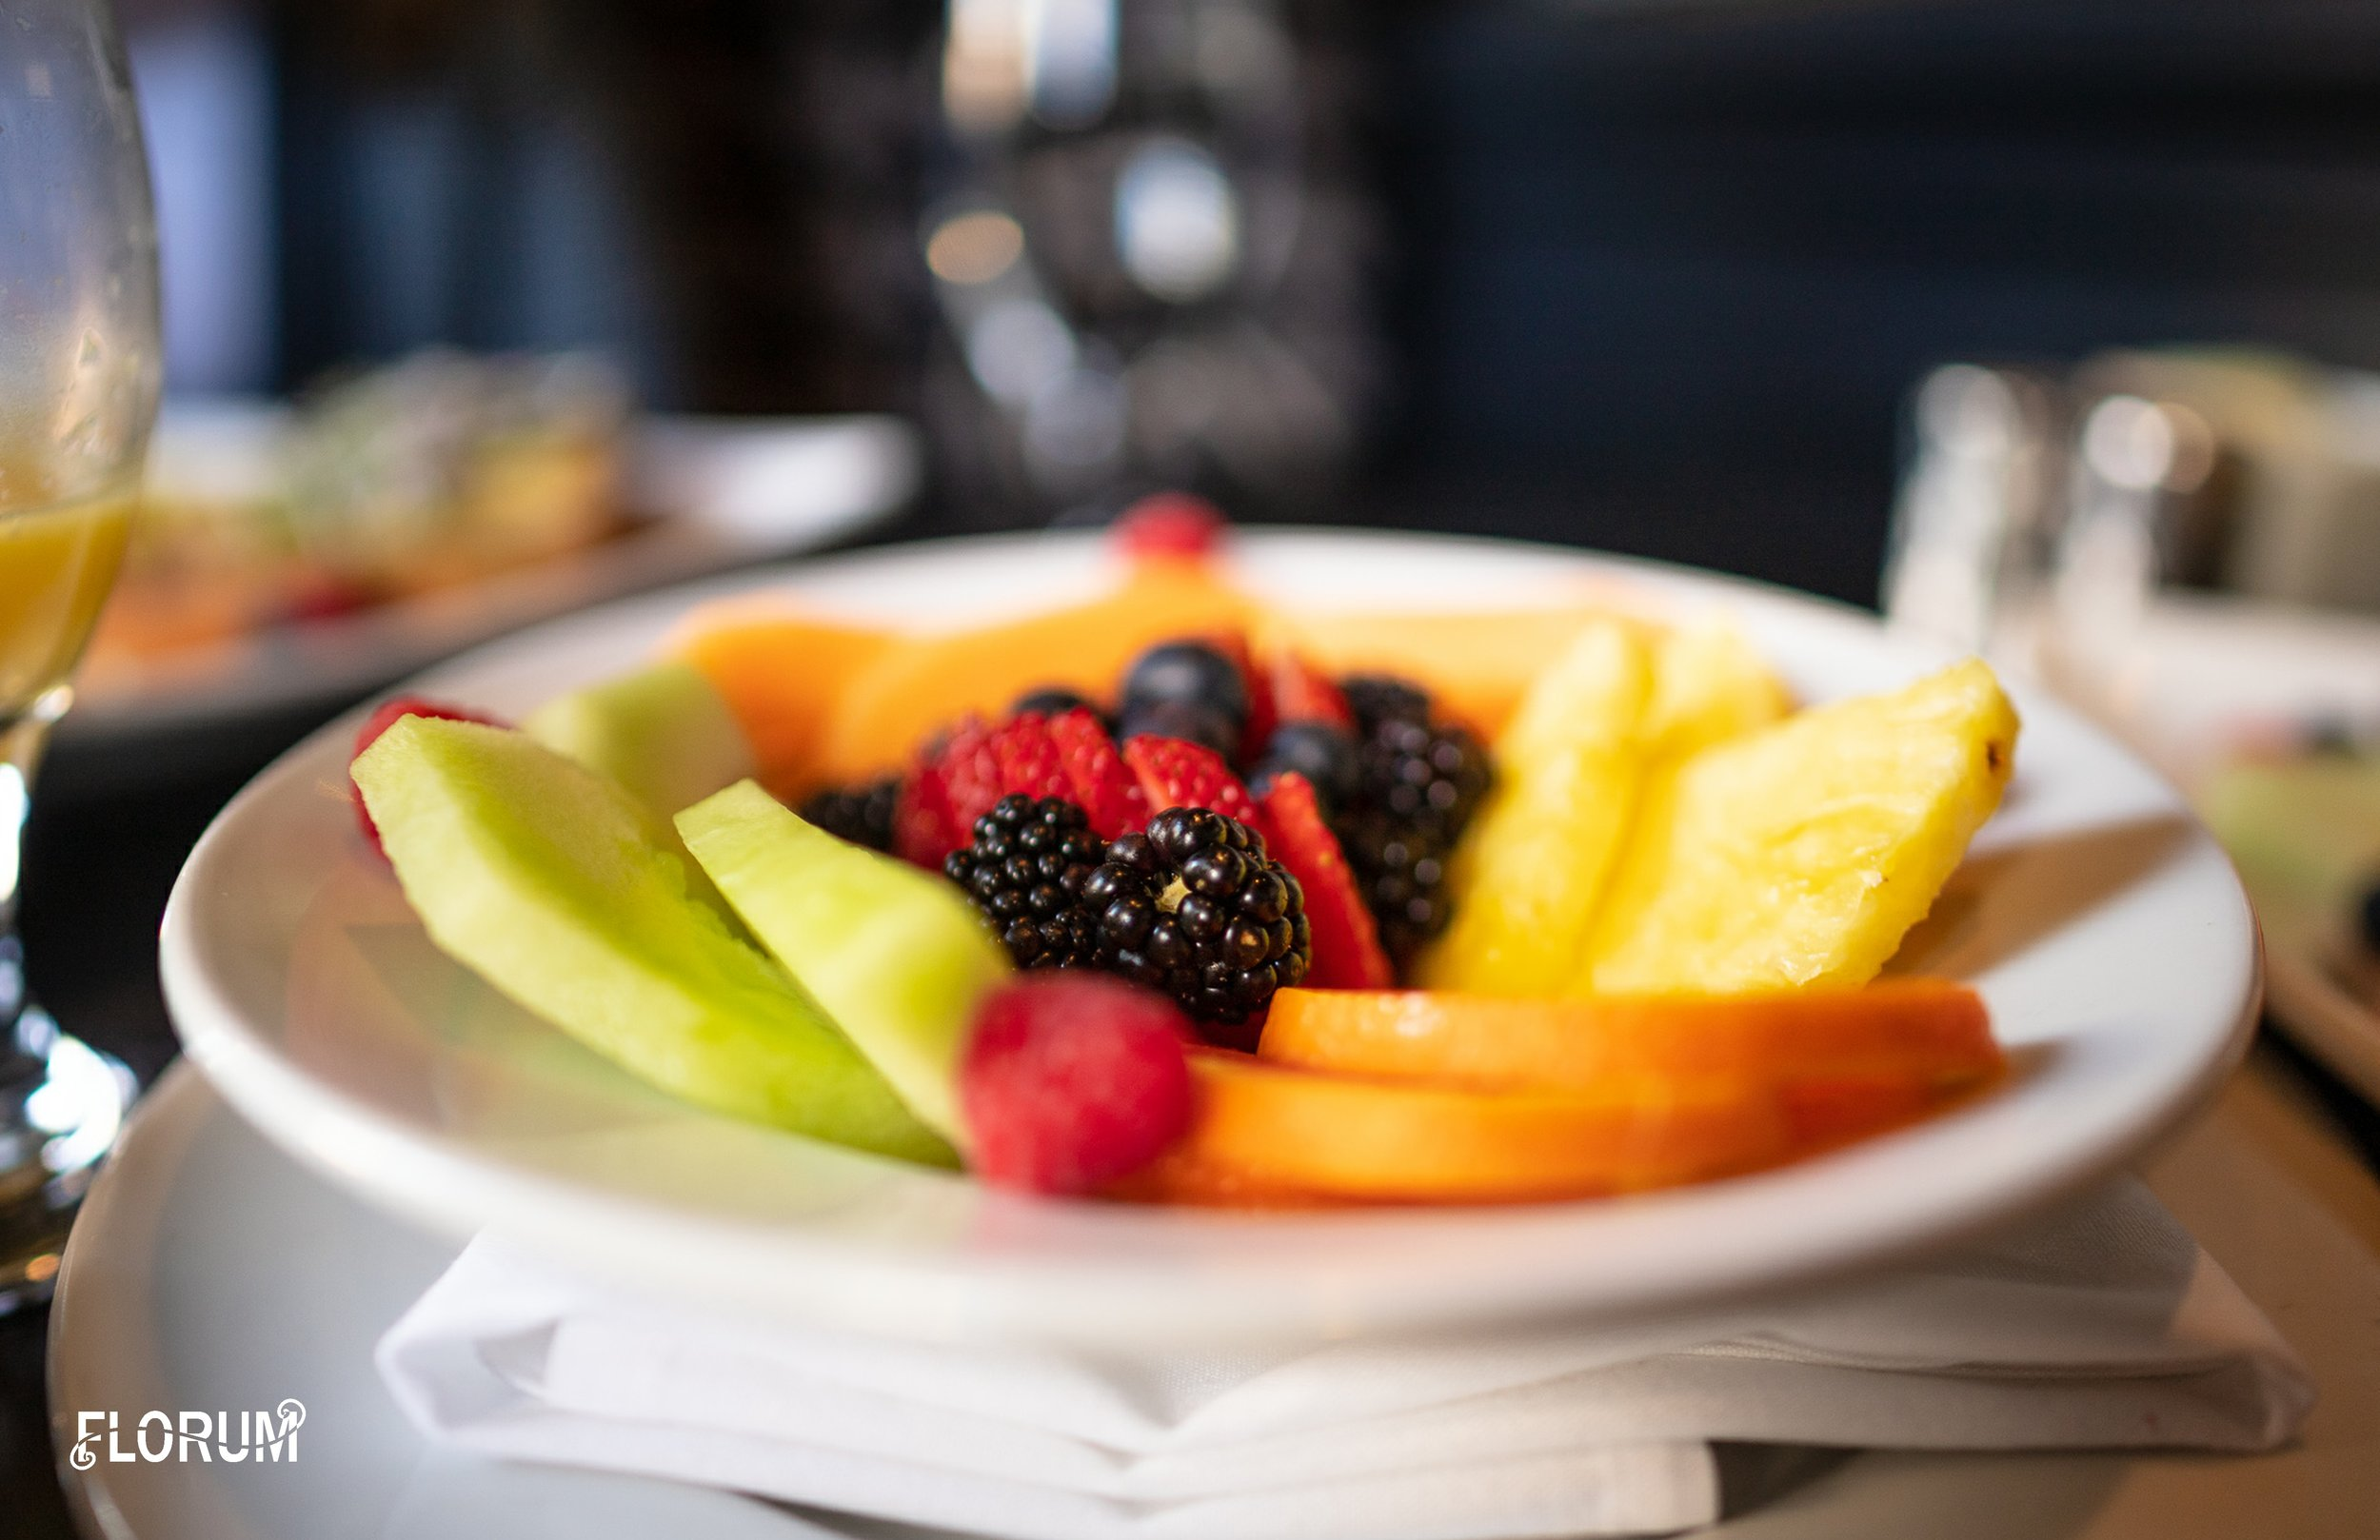 Not realizing fruit was already included on our plates, we ordered the fruit bowl to share. The fruit was as fresh as it was delicious.